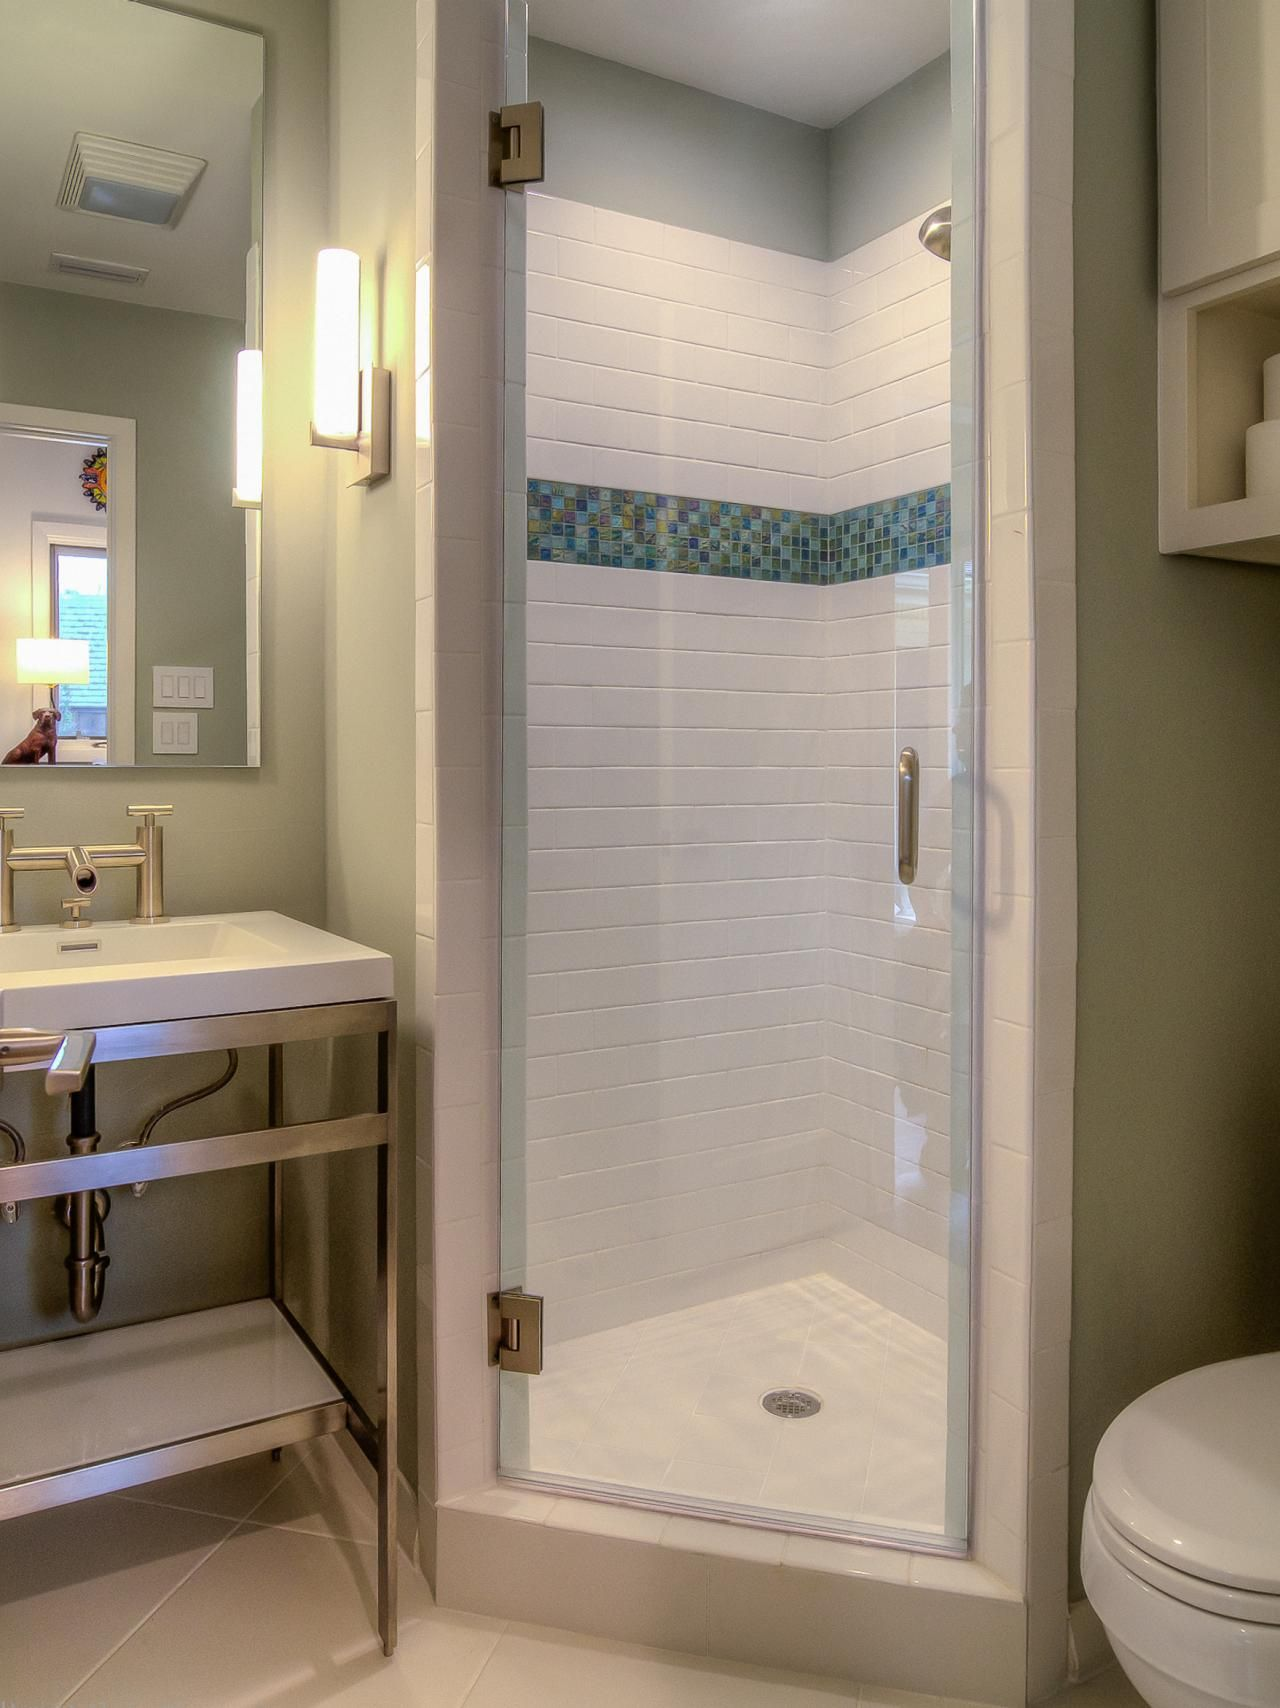 Bathroom layout shower - A Stall Shower Fits Perfectly In The Corner Of This Small Bathroom Bright White Tile